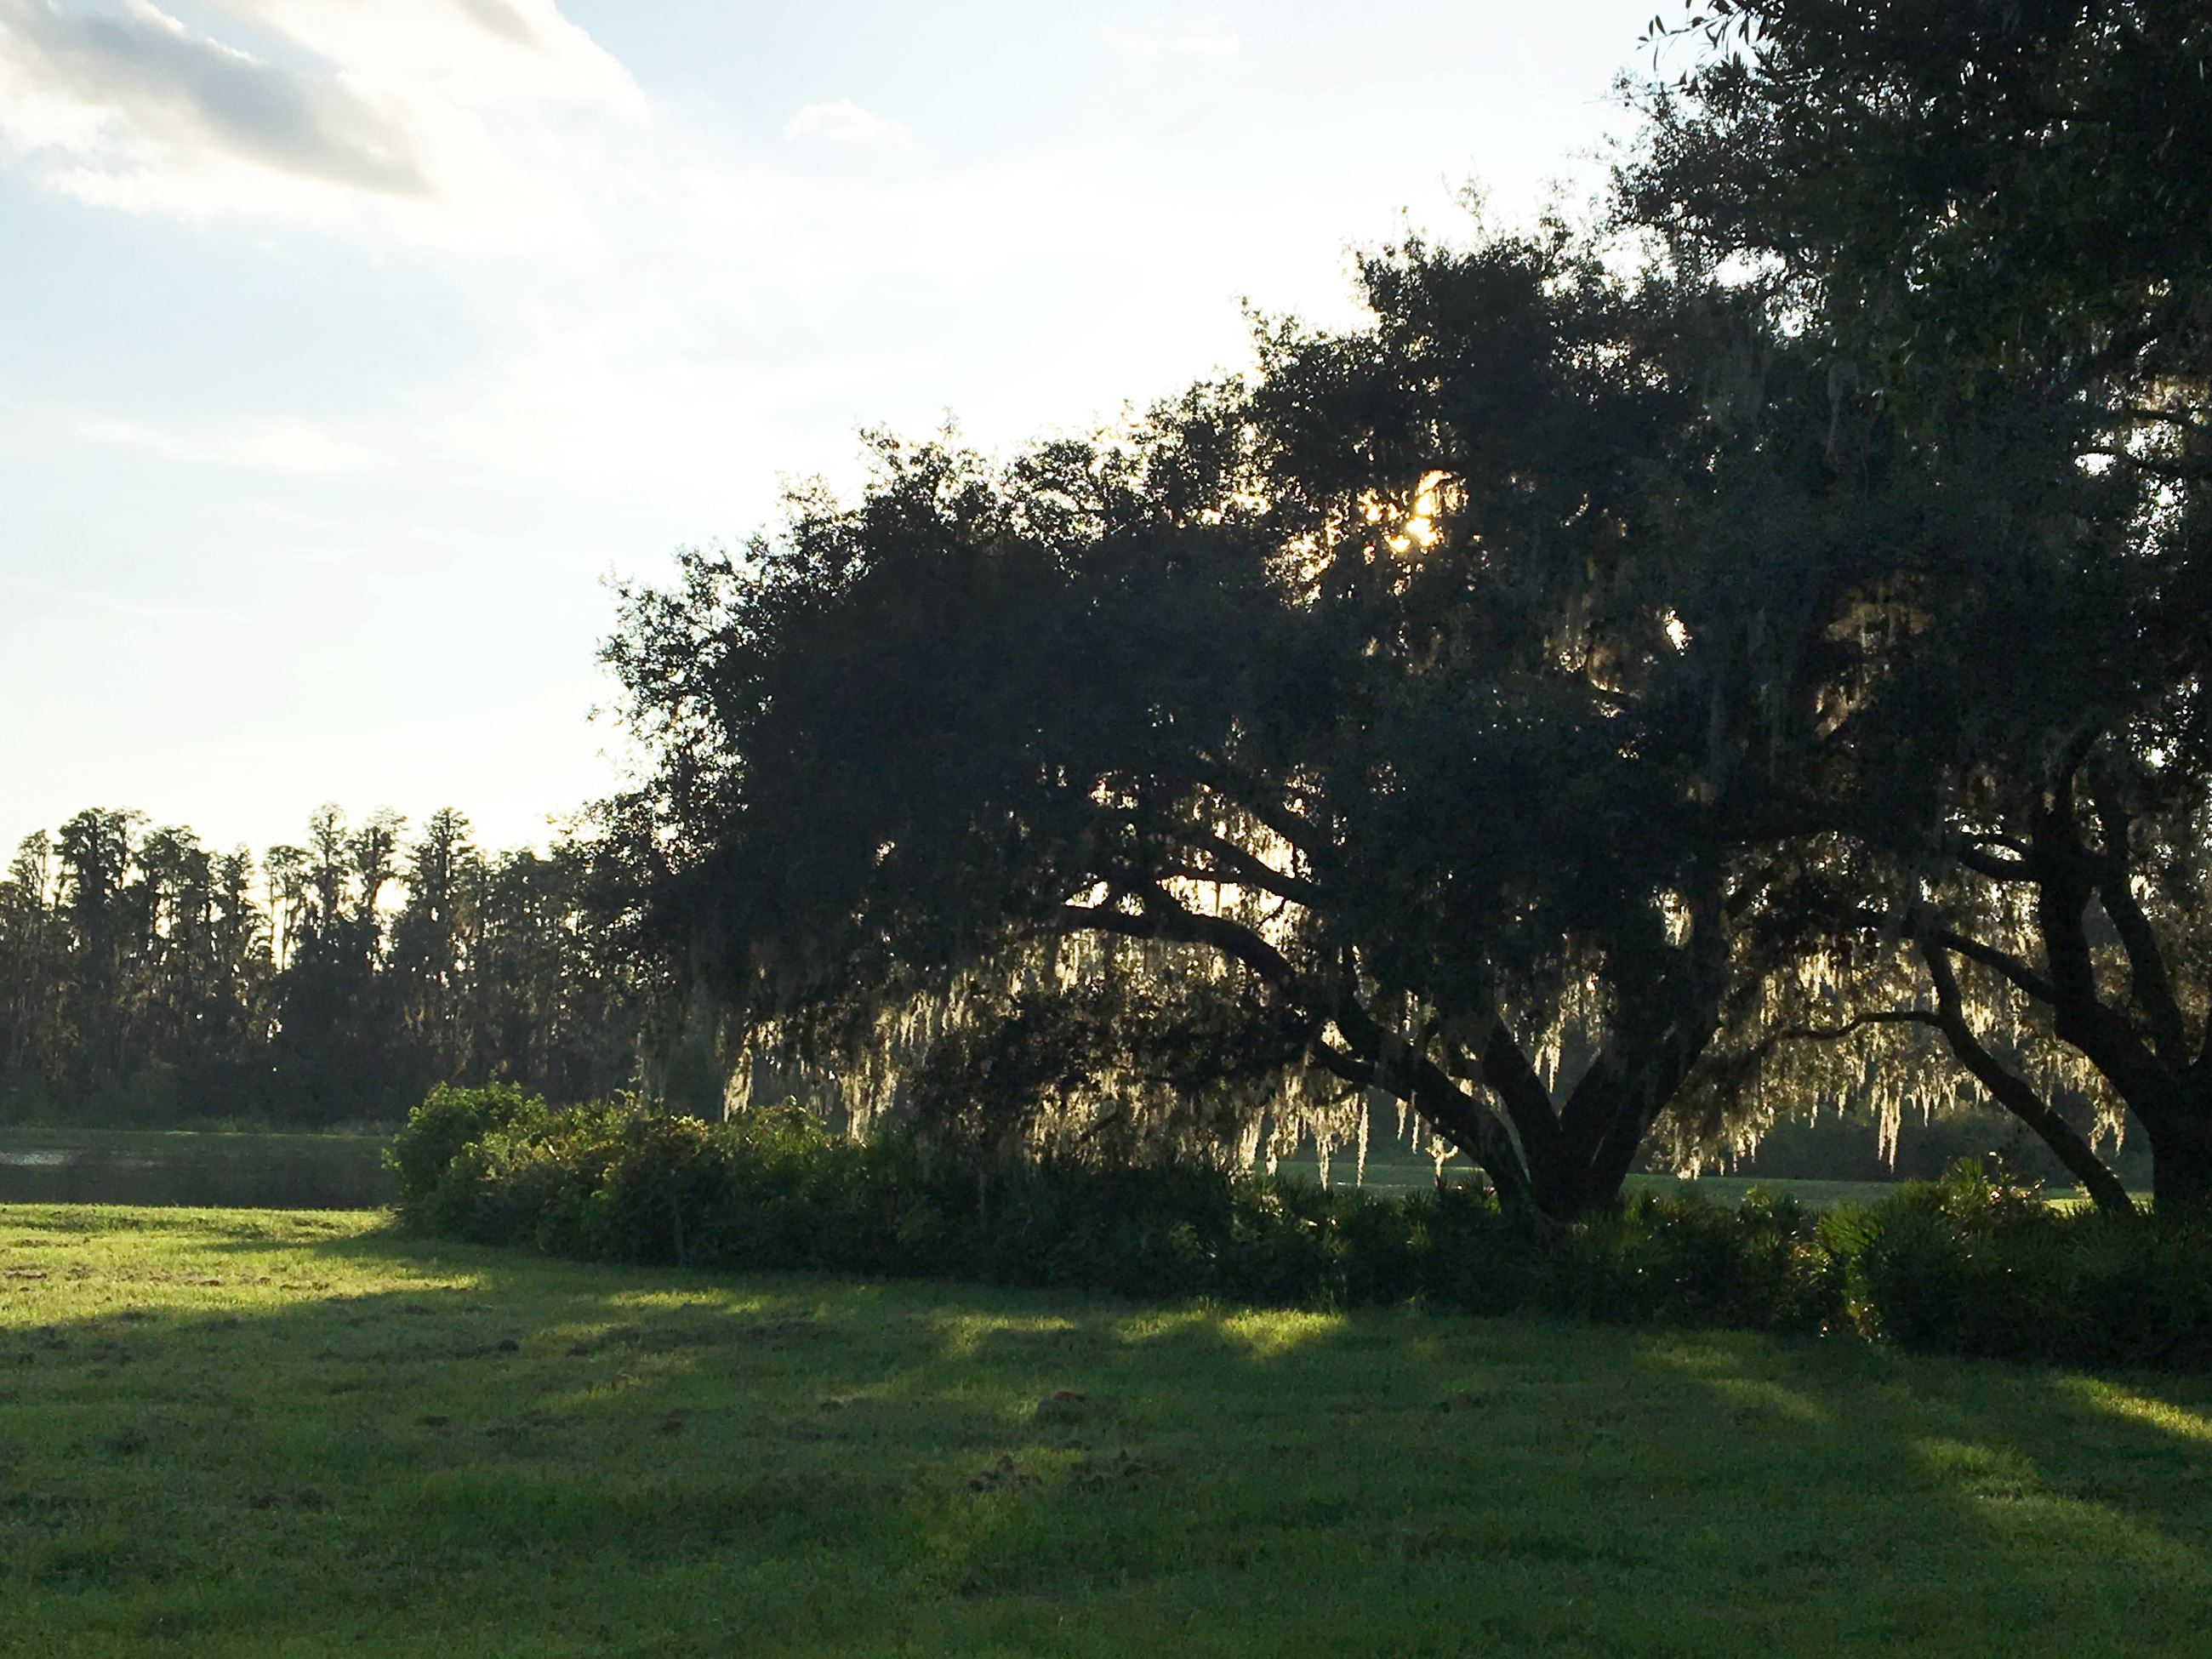 Sunset view of Live Oak tree with pond in the background